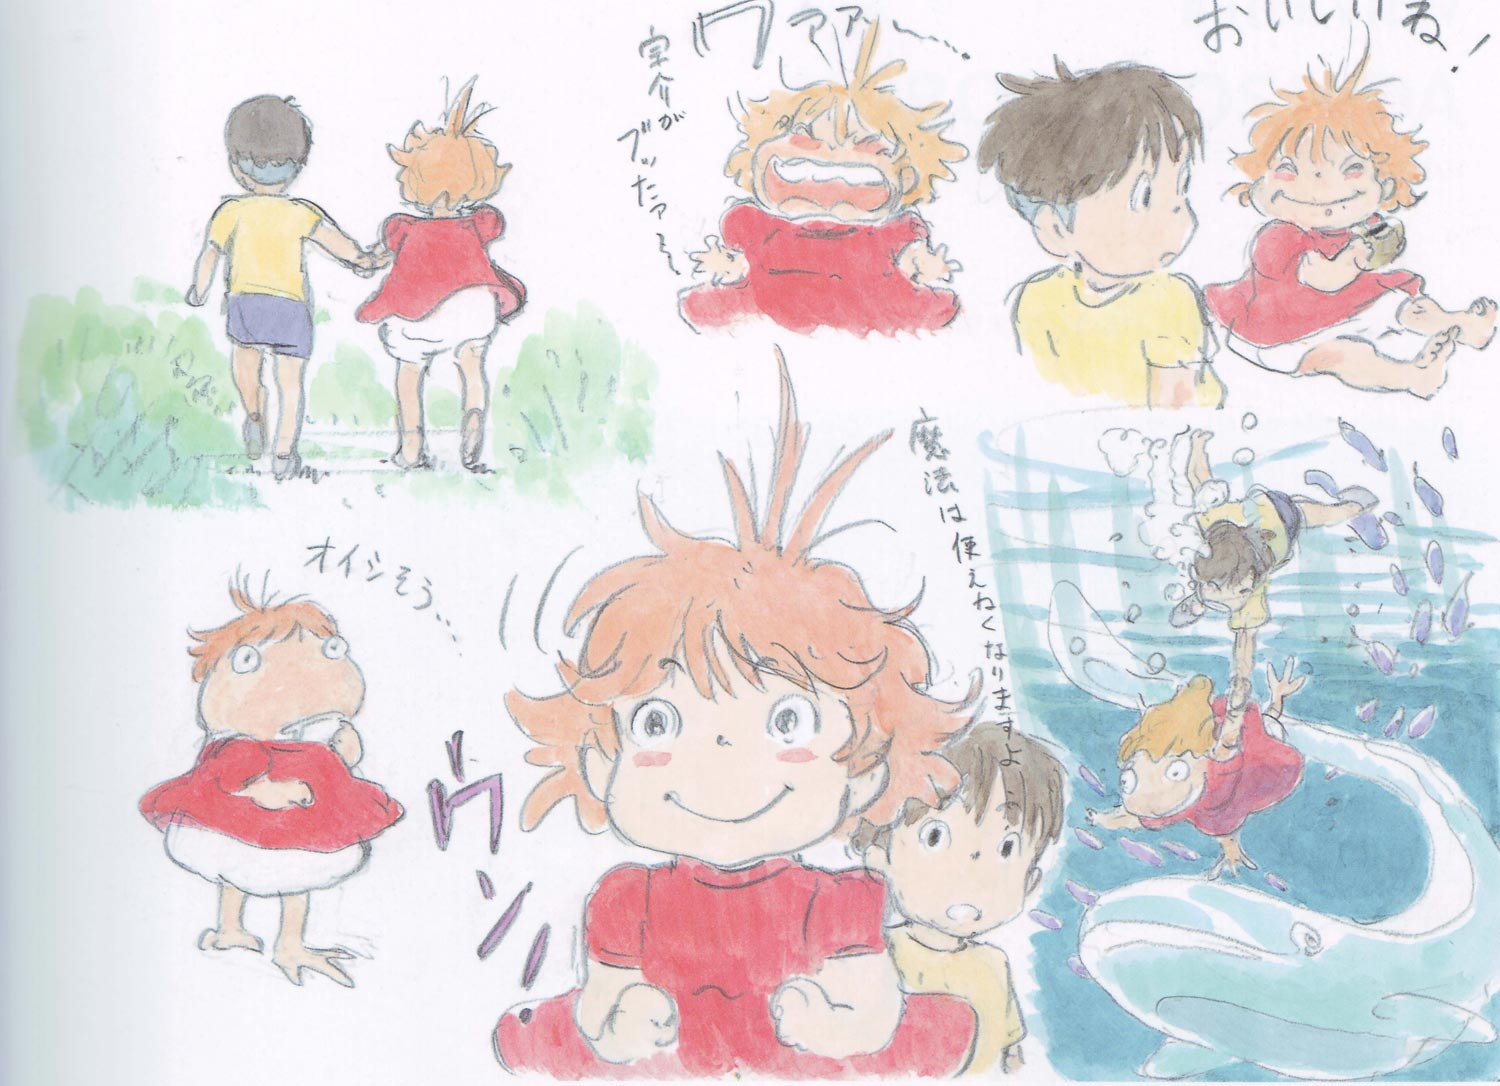 ponyo_on_the_cliff_by_the_sea_artwork_character__07.jpg